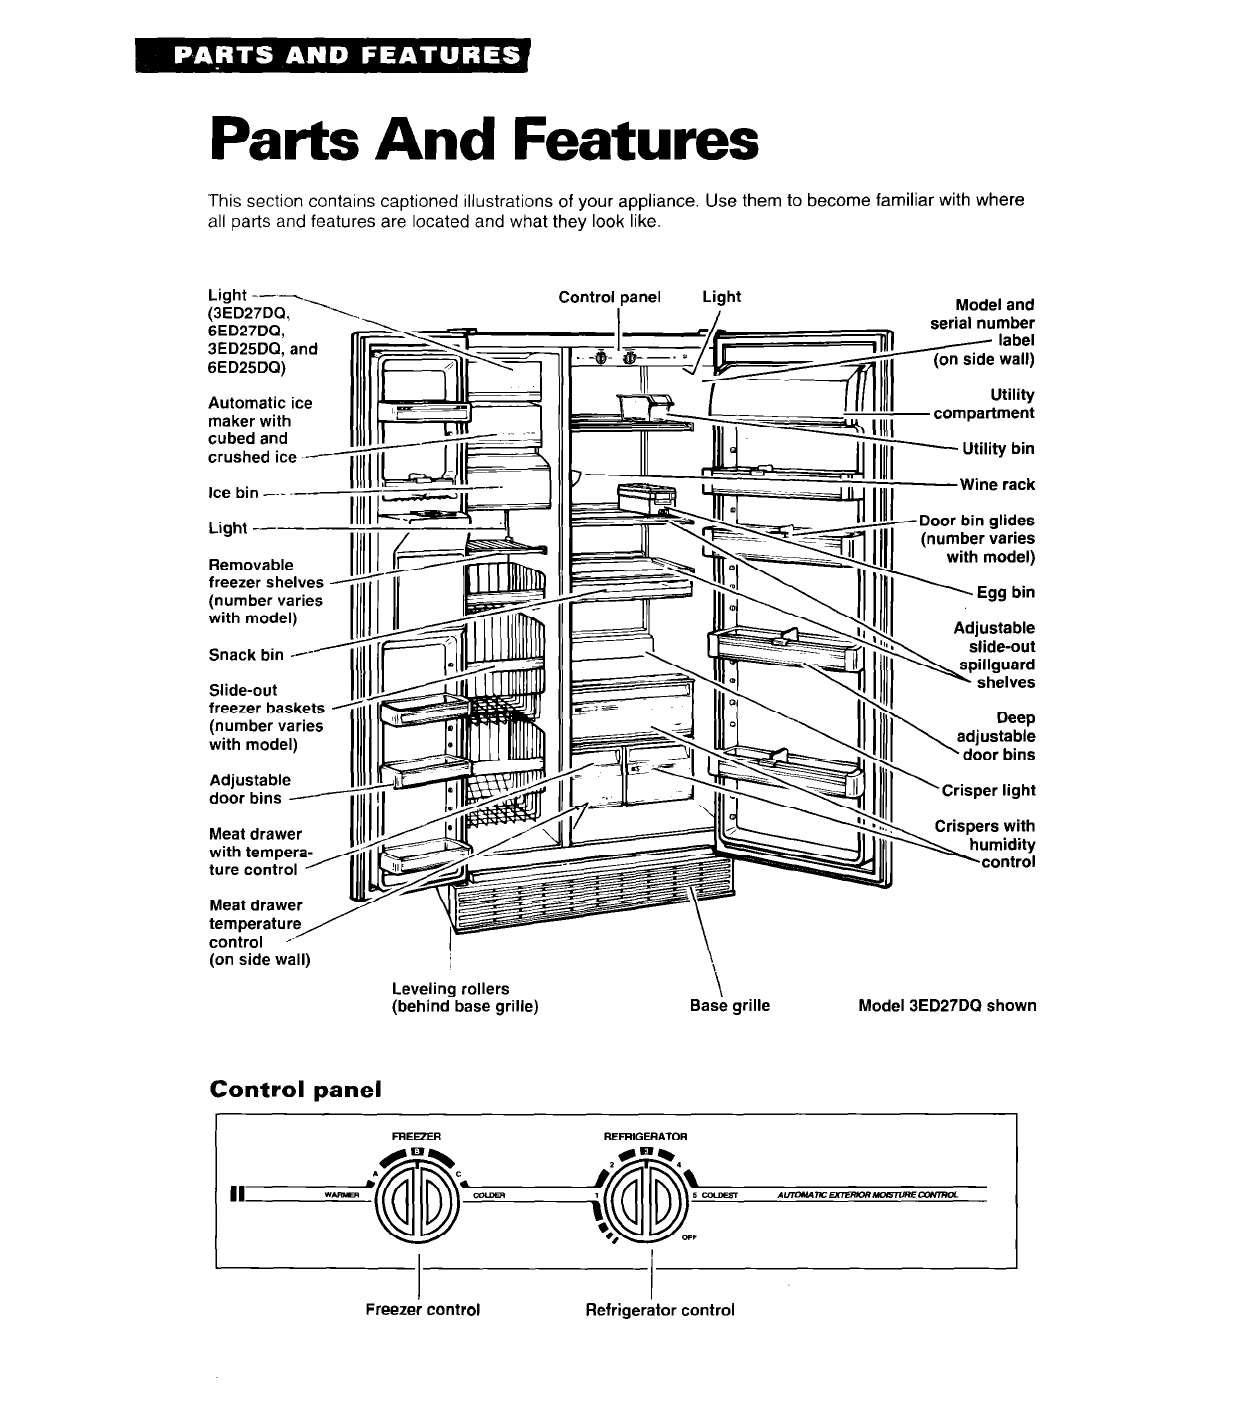 page 4 of whirlpool refrigerator 3ed27dq user guide Illustration for Whirlpool Refrigerator Parts whirlpool refrigerator parts list manual